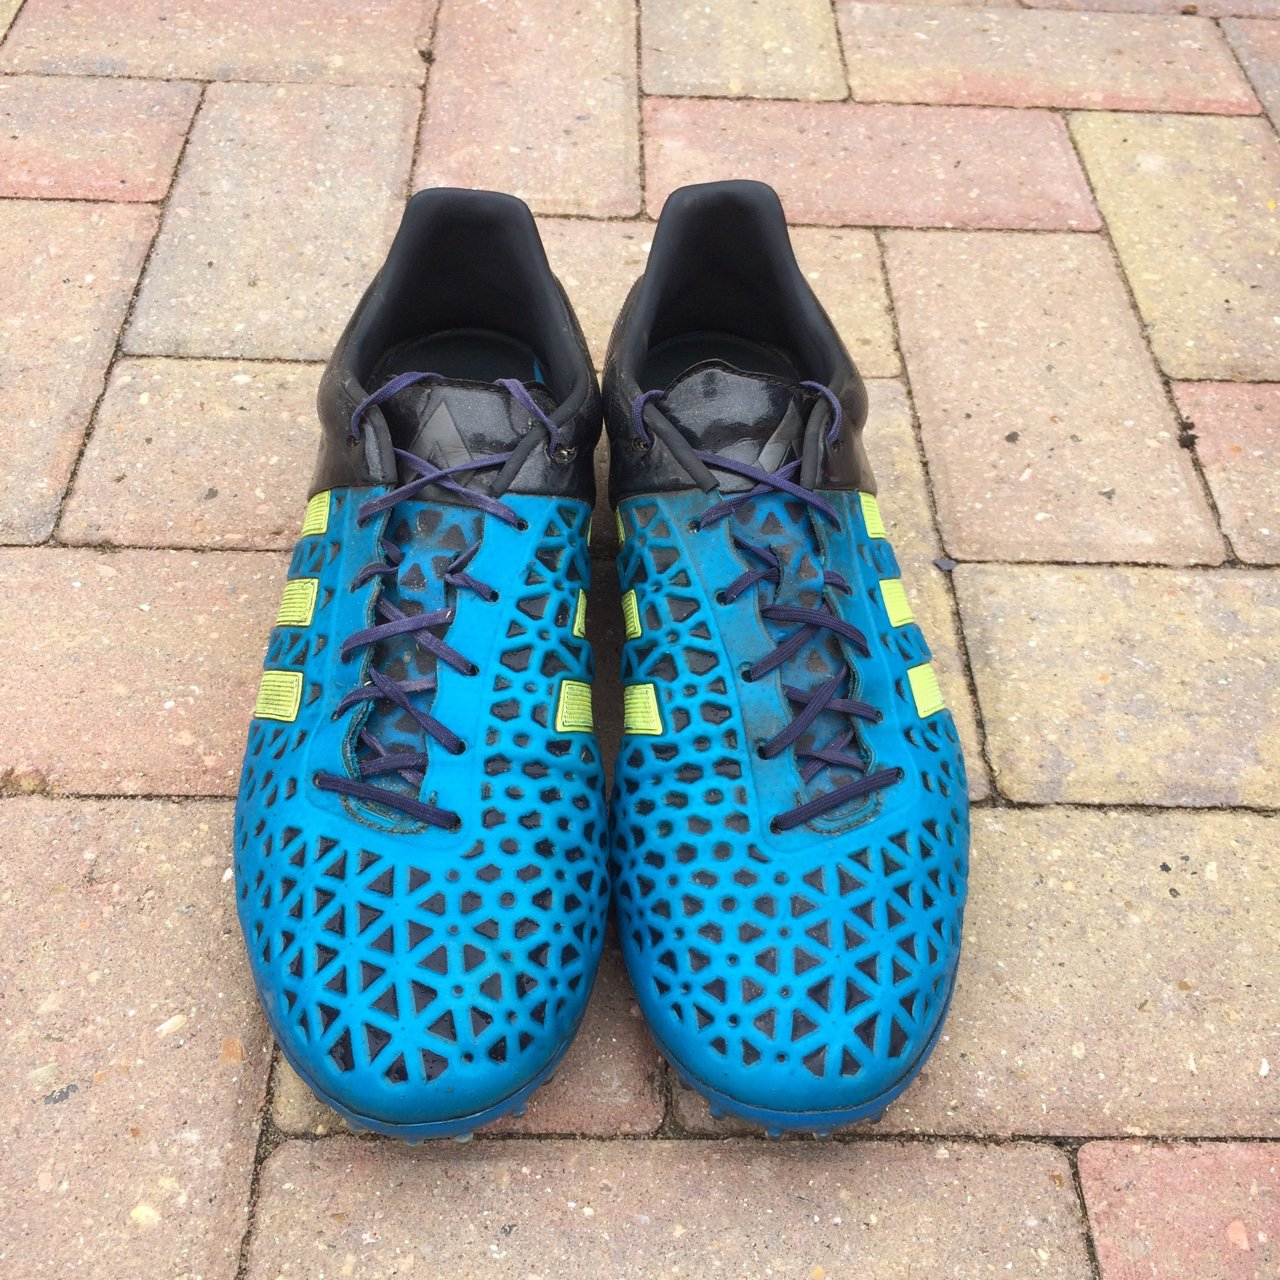 Adidas Ace 15.1 Blue   Black Night from Adidas for £150 for - Depop 4a1c3bb2e